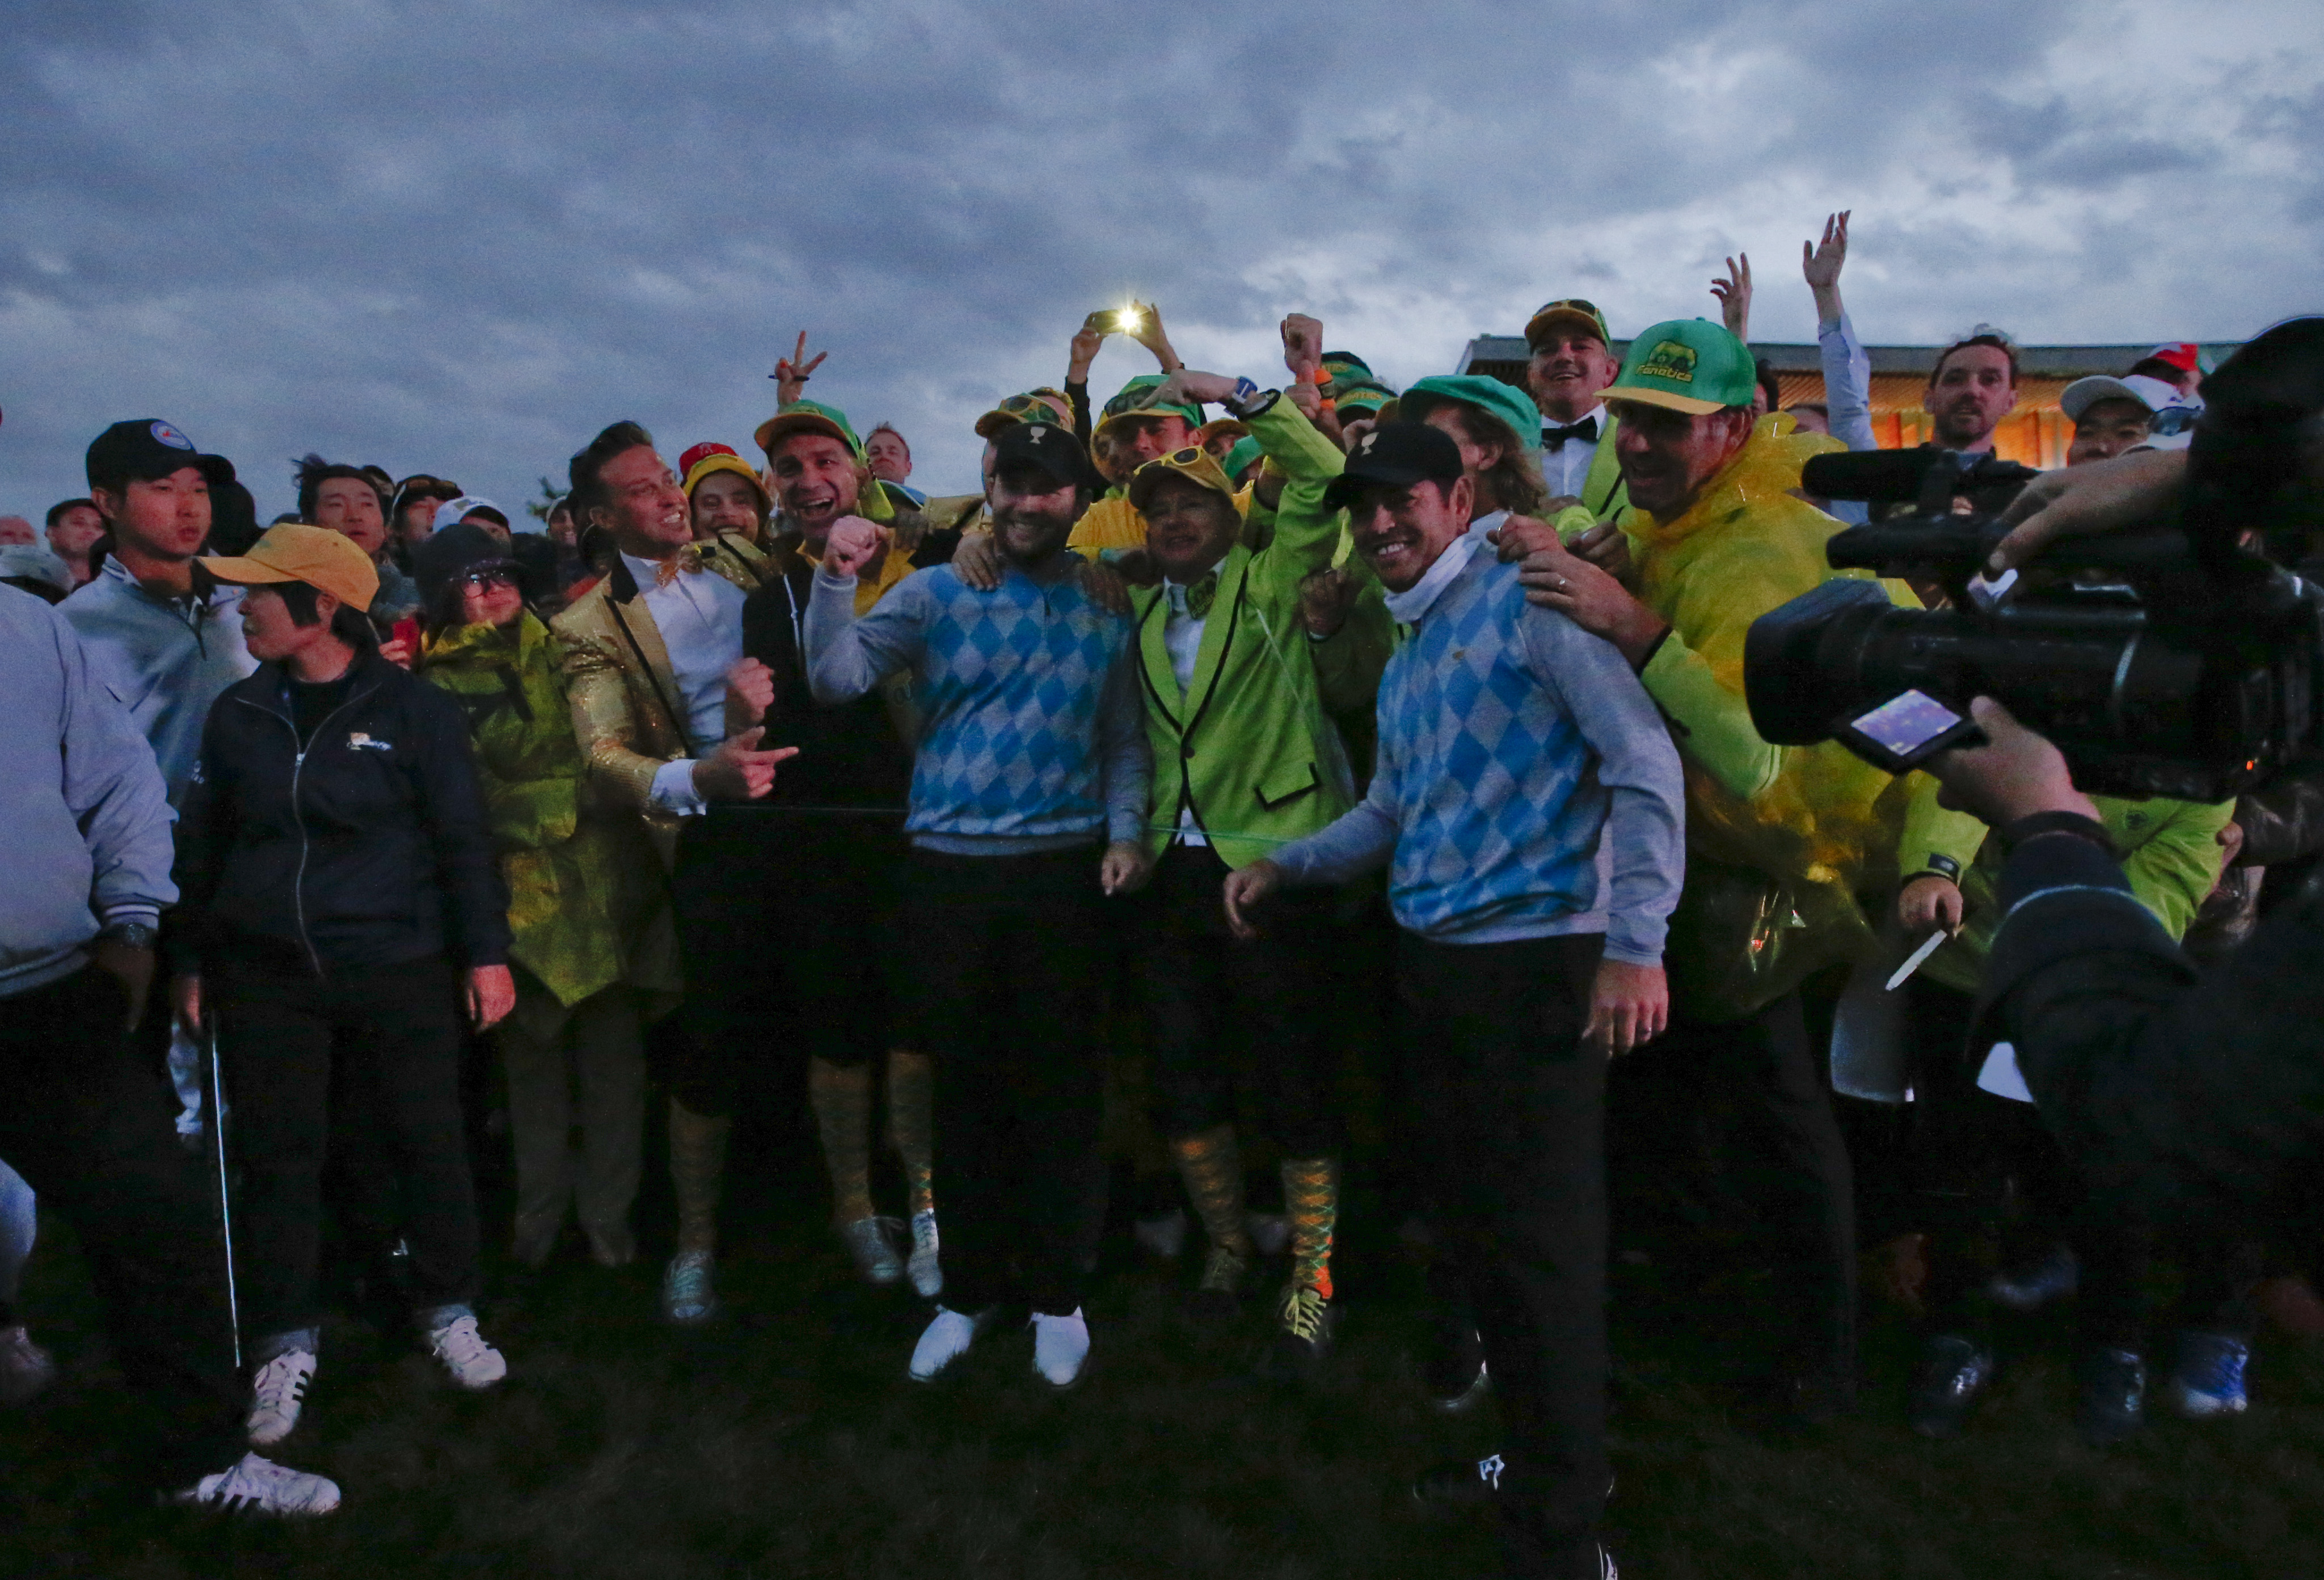 International team player's Branden Grace of South Africa and compatriot Louis Oosthuizen are surrounded by fans after they won their four ball match in fading light at the Presidents Cup golf tournament at the Jack Nicklaus Golf Club Korea, in Incheon, S